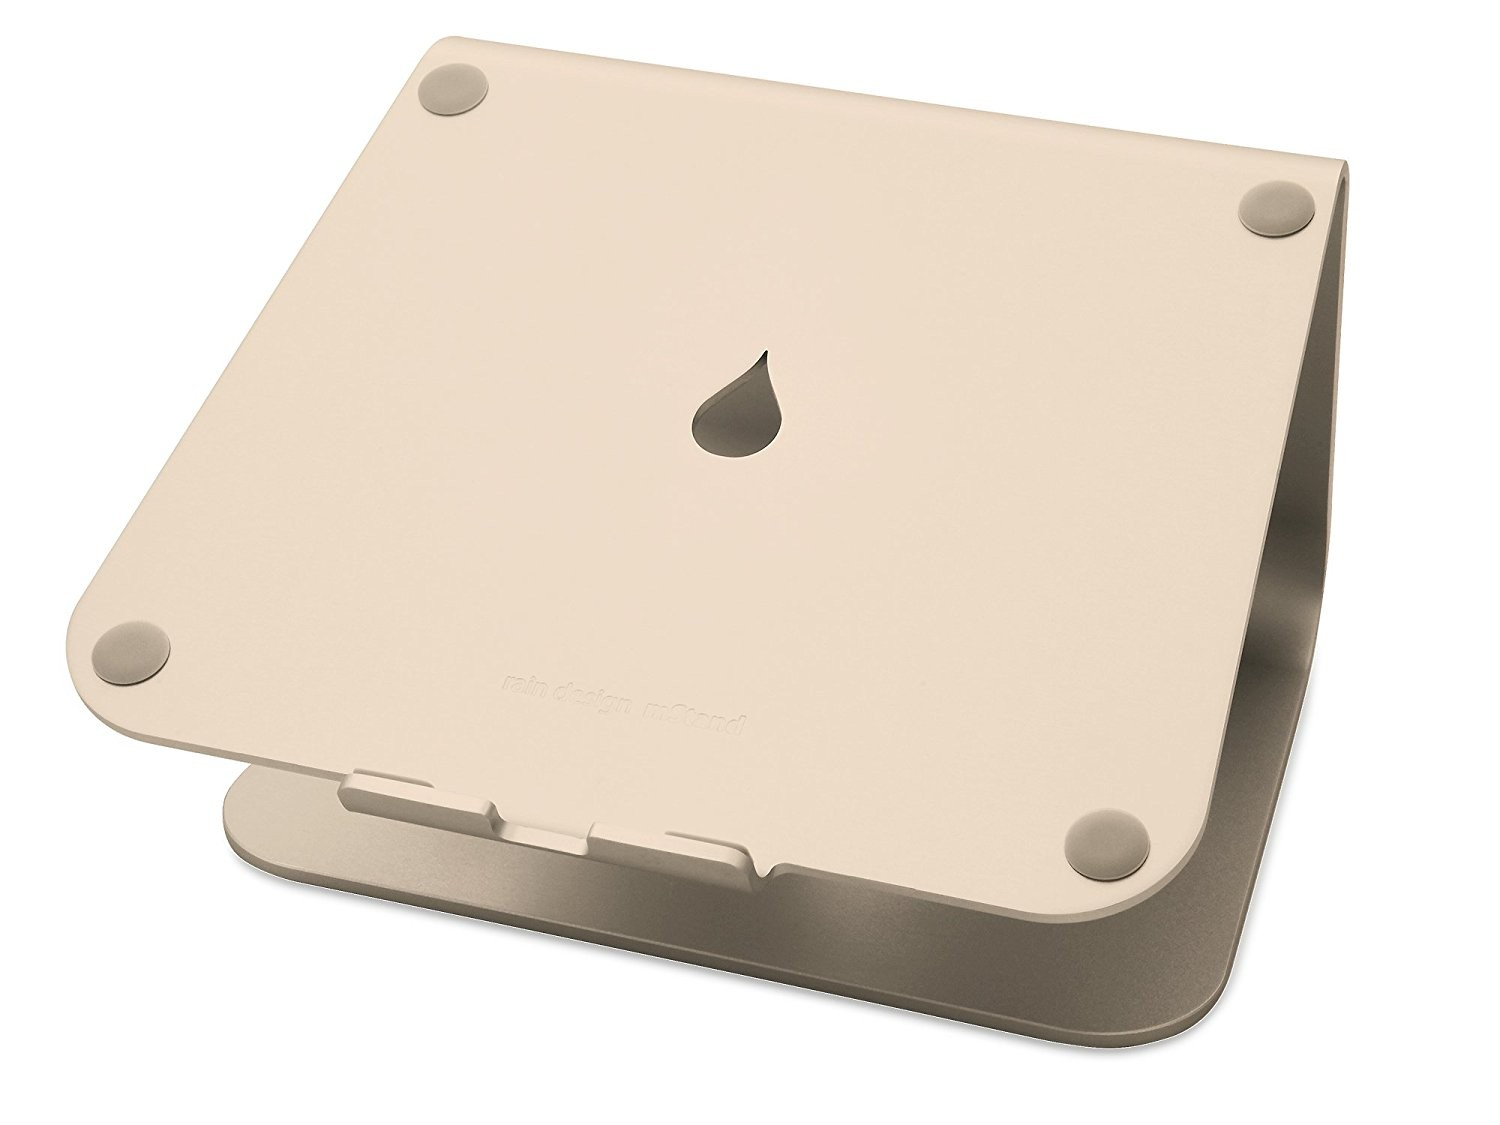 Rain Design mStand360  Laptop Stand with Swivel Base - Gold, RAI10073